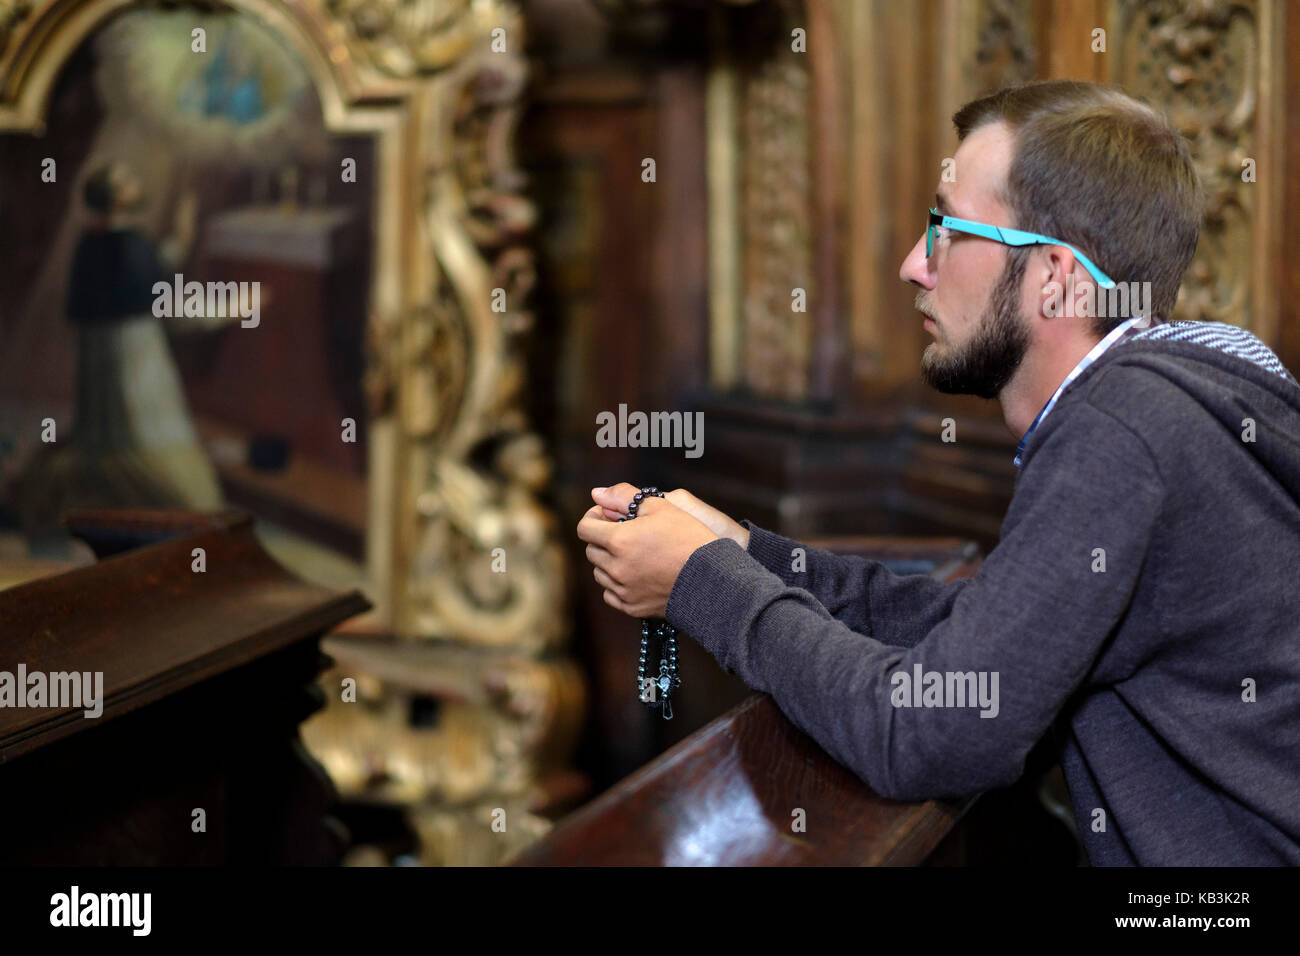 Young man with glasses and beard praying in a church - Stock Image